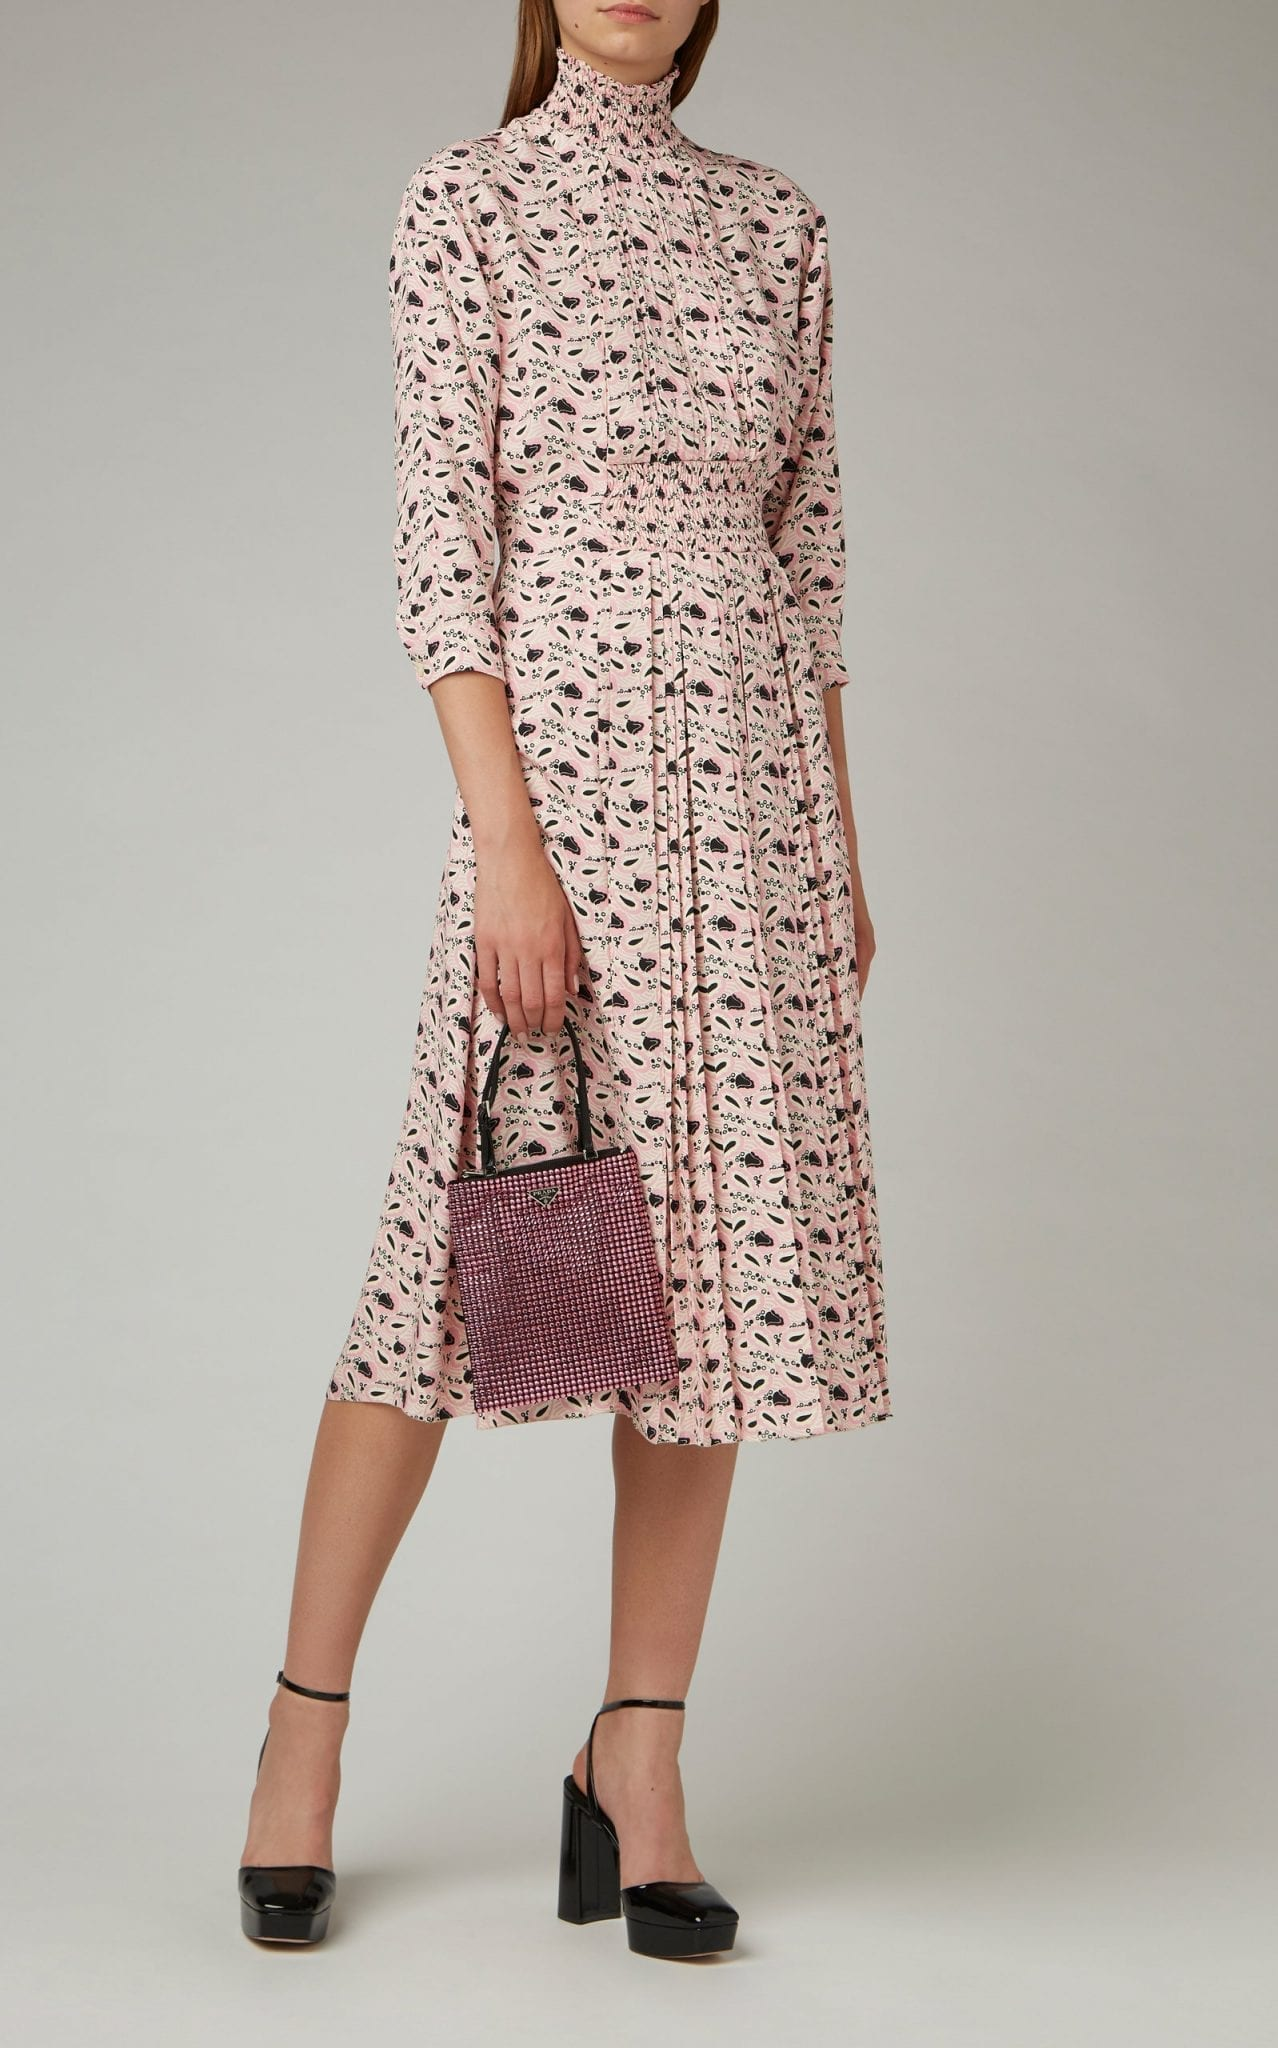 PRADA Smocked Printed Crepe Midi Dress